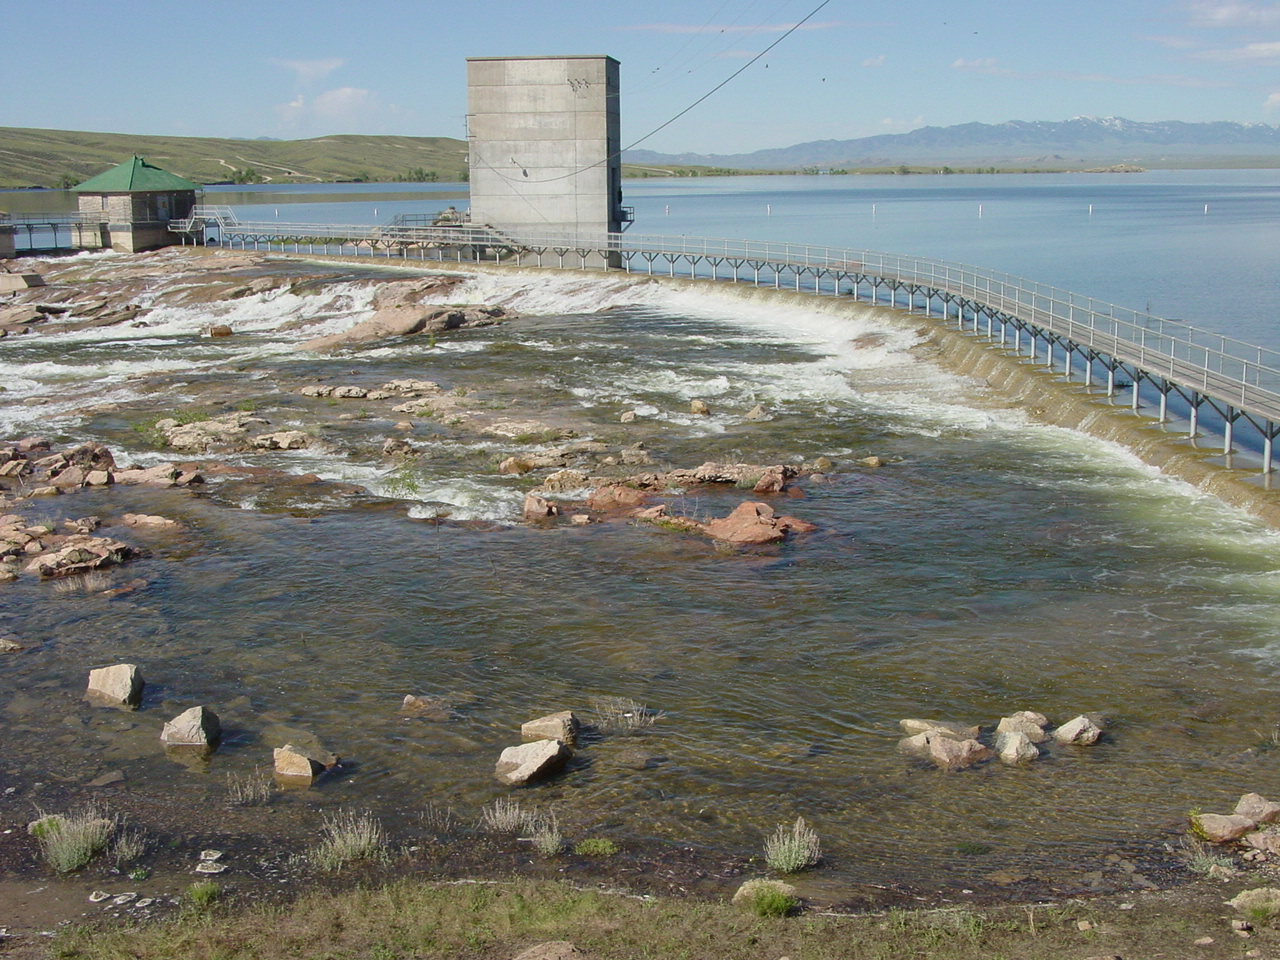 Pathfinder Reservoir Spillway - June, 2010